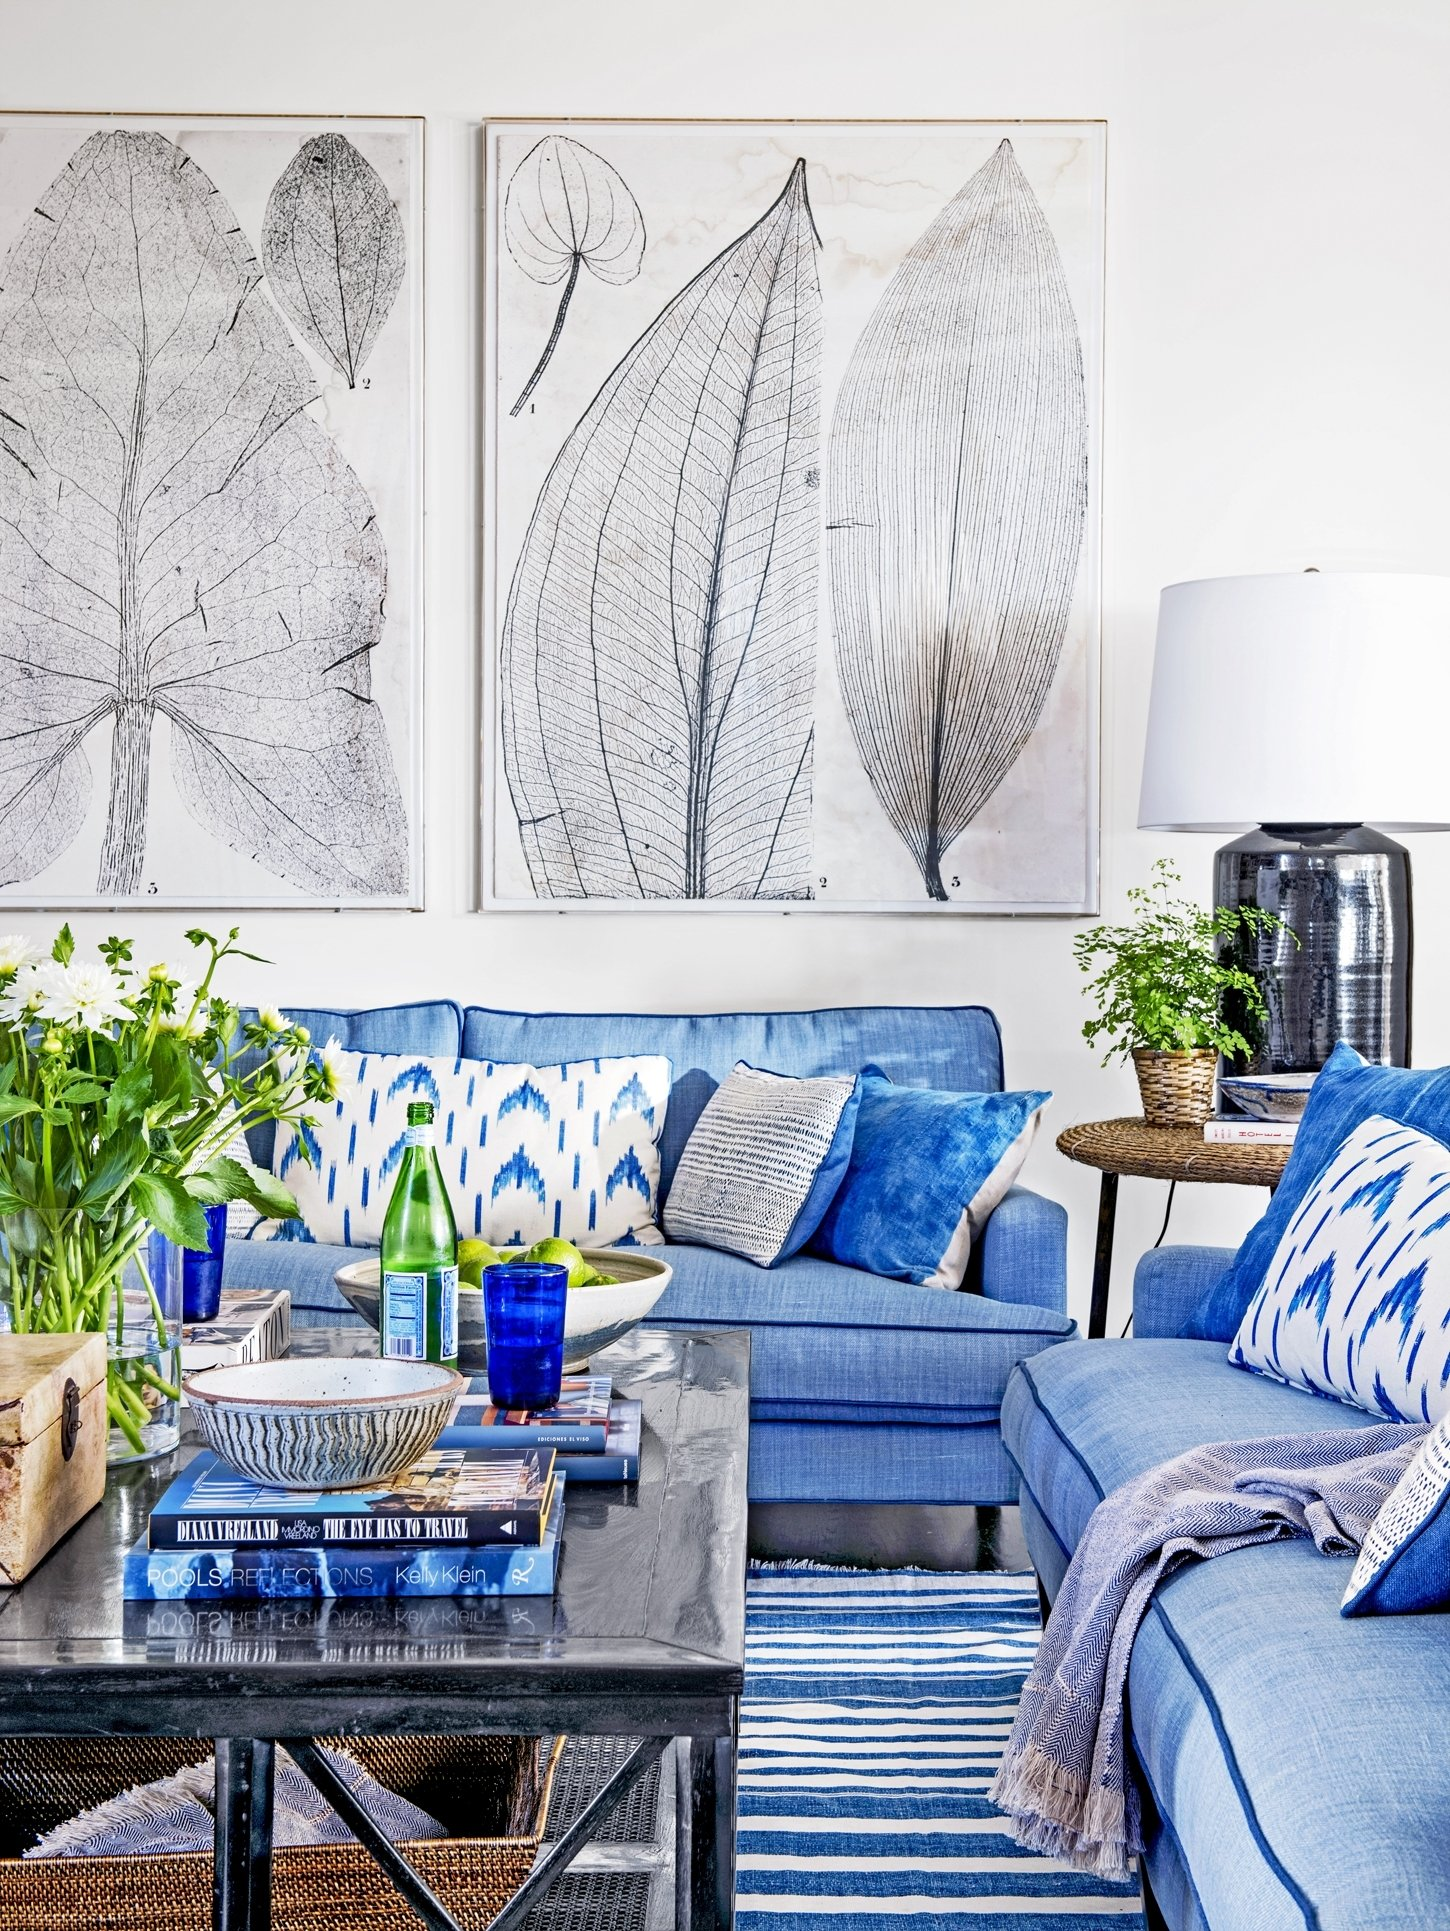 10 Most Recommended Blue Living Room Decorating Ideas living room living room blue theme decoration unique living room 2020